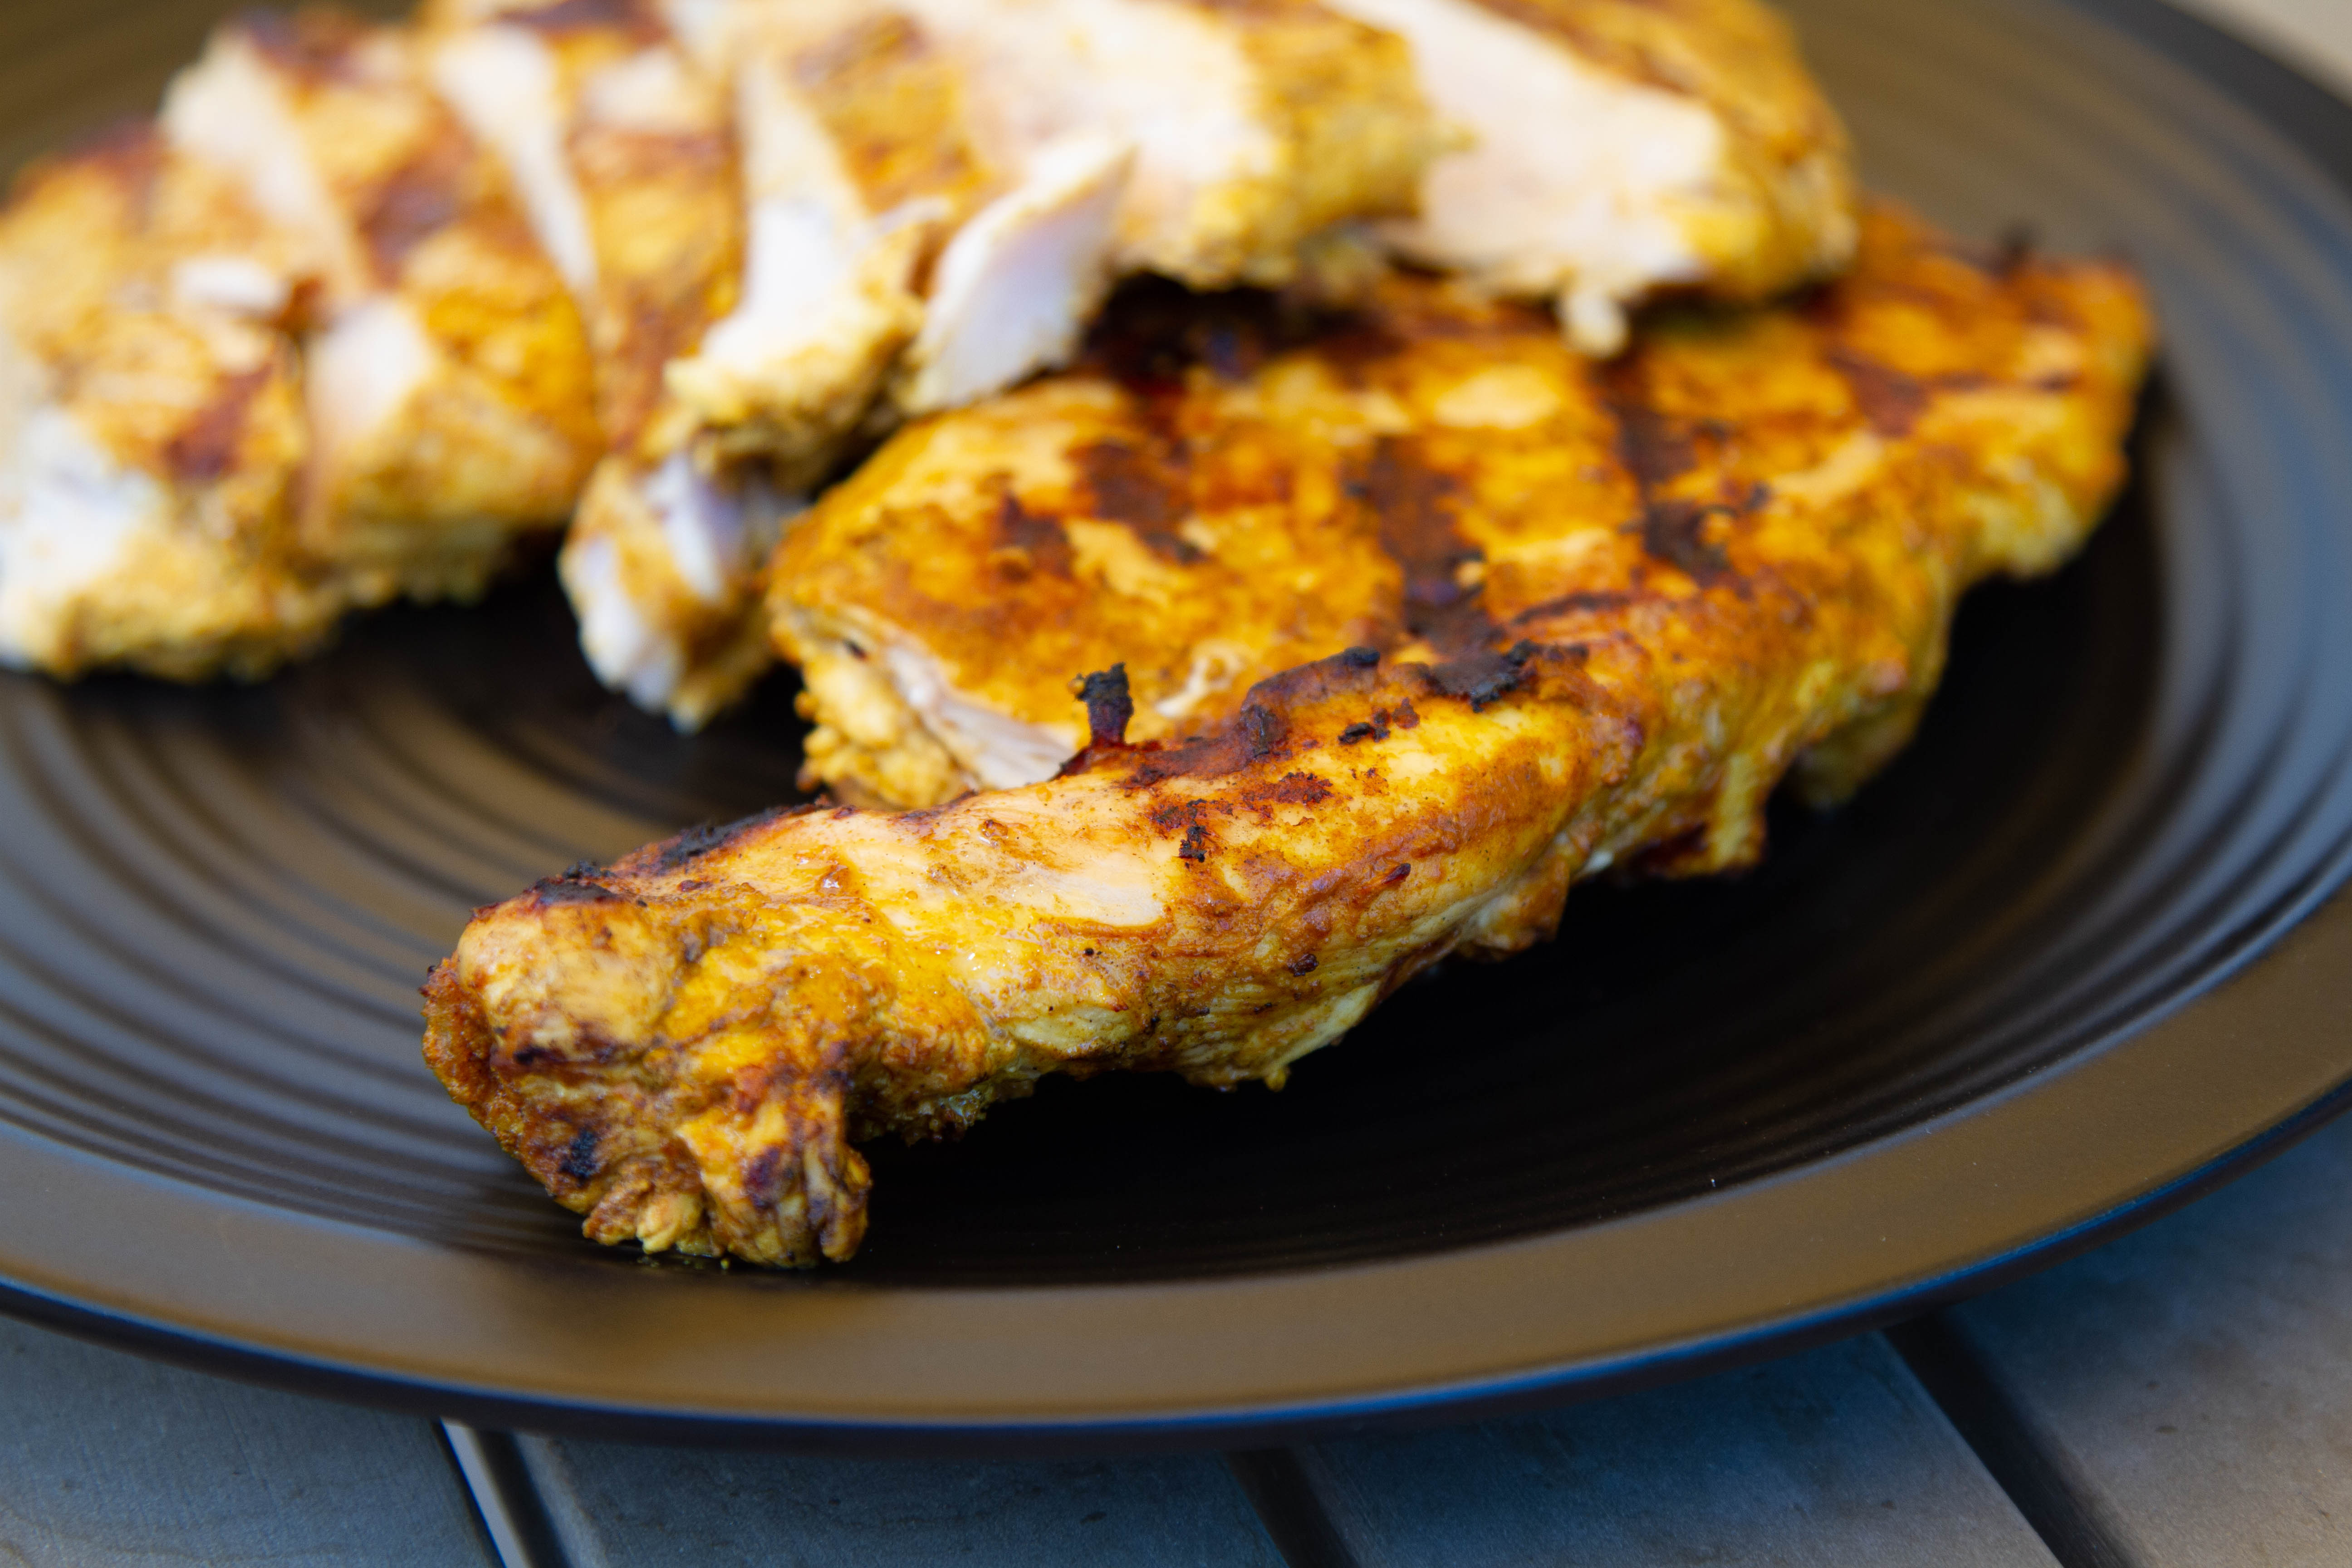 Grilled tandoor-style chicken